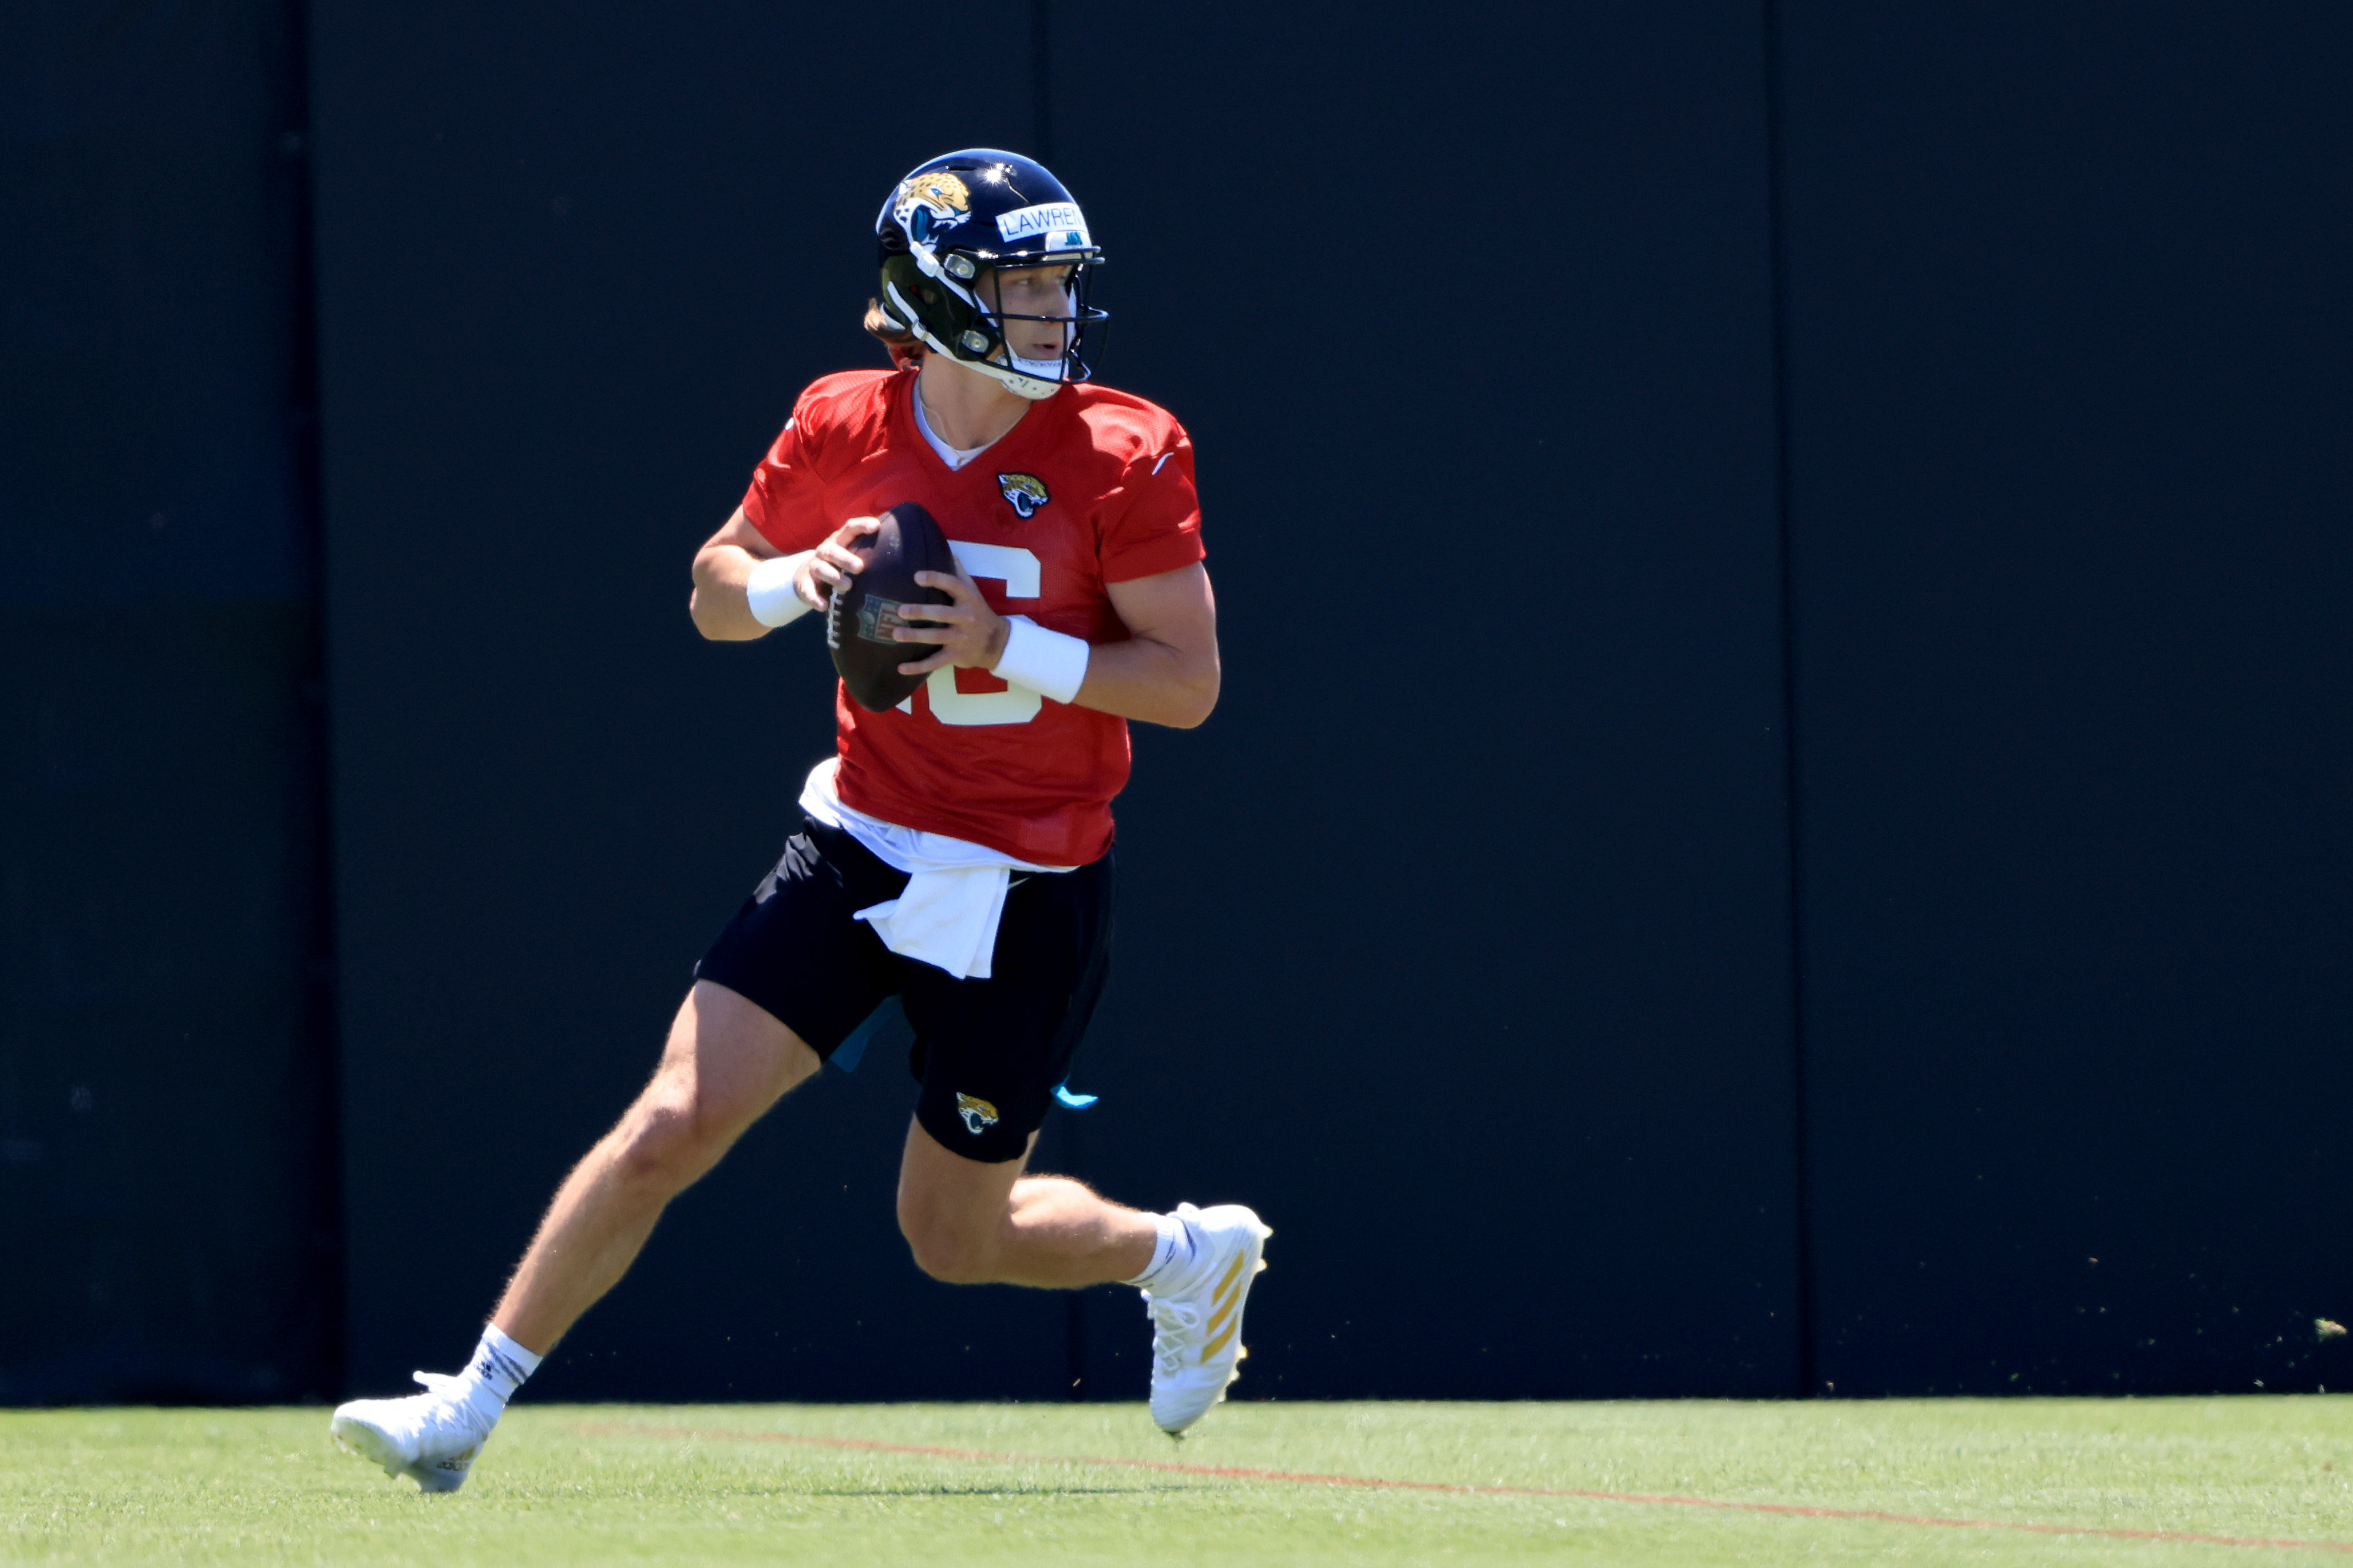 Trevor Lawrence #16 of the Jacksonville Jaguars runs drills during Jacksonville Jaguars Training Camp at TIAA Bank Field on May 15, 2021 in Jacksonville, Florida.